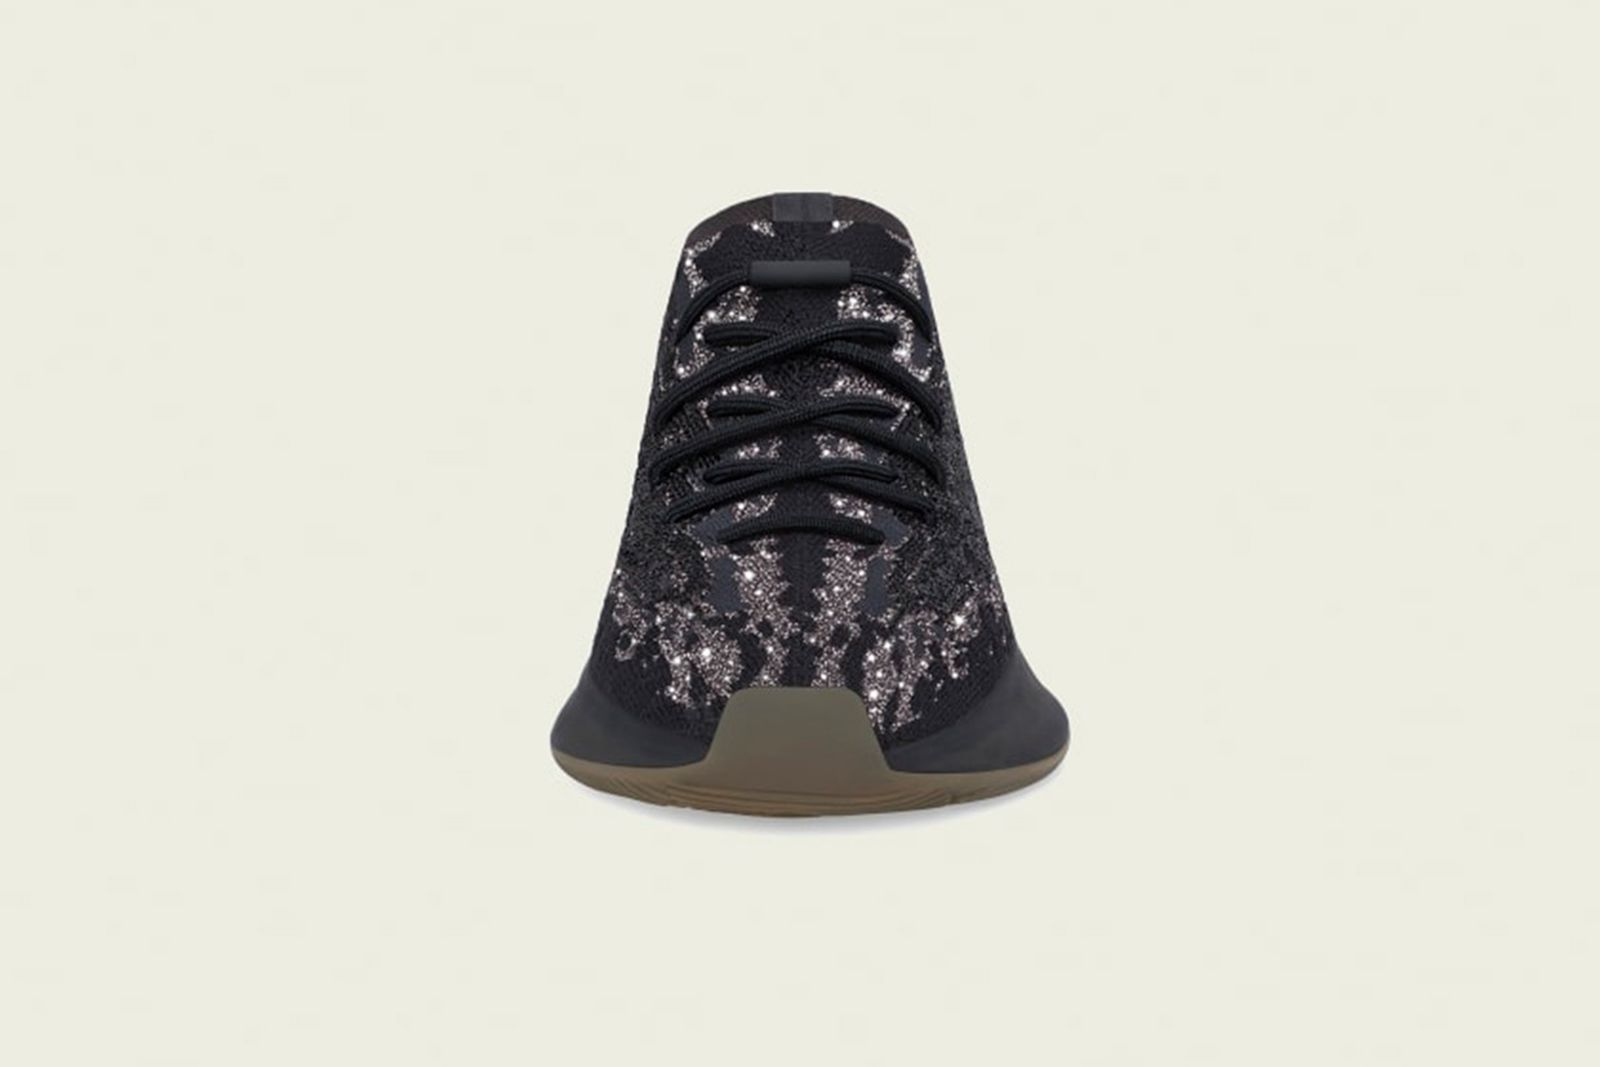 adidas-yeezy-boost-380-onyx-release-date-price-03